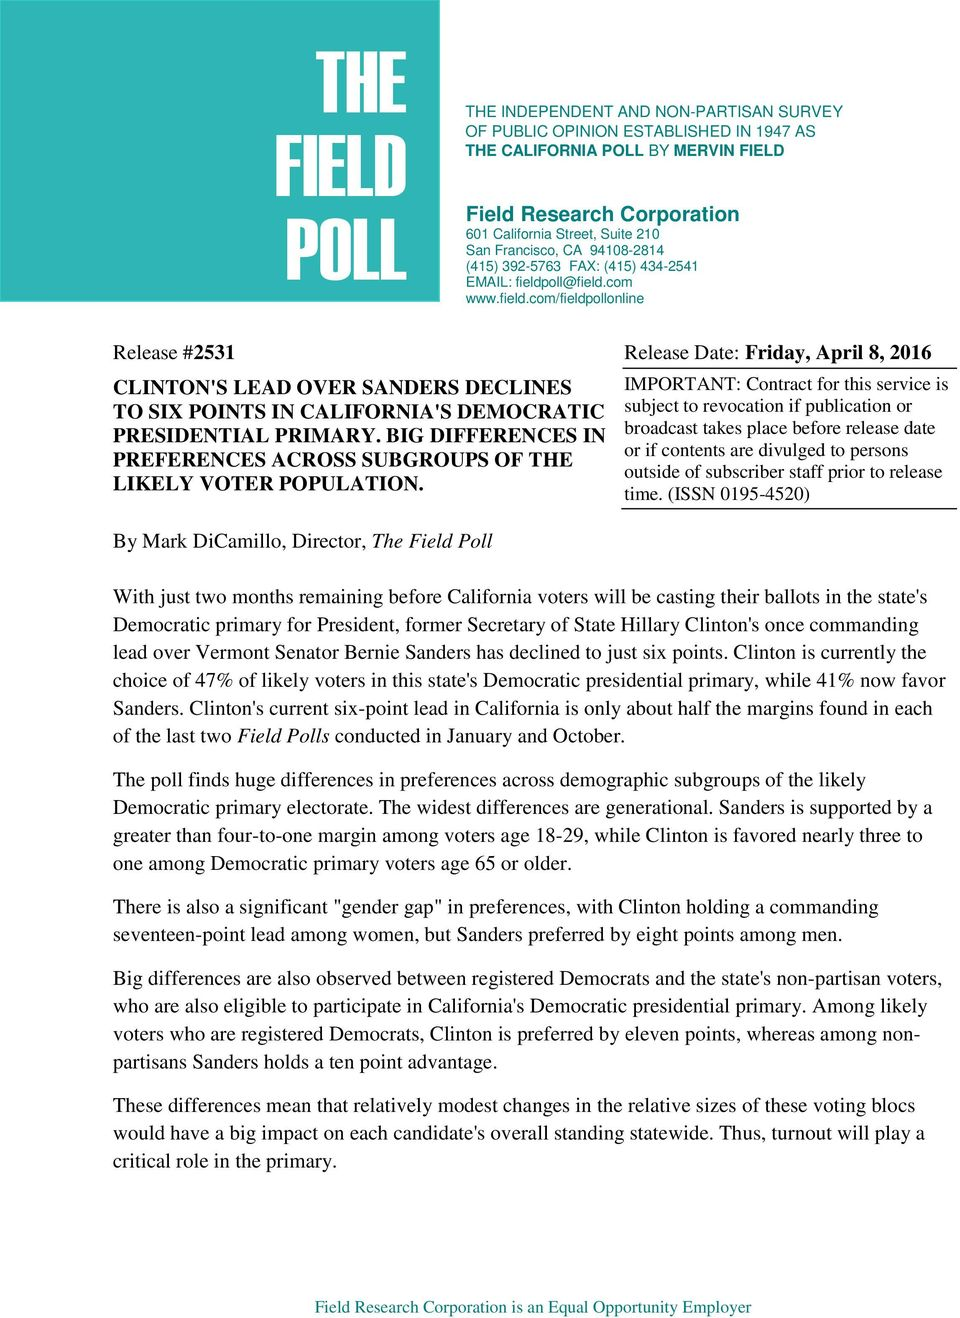 oll@field.com www.field.com/fieldpollonline Release #2531 Release Date: Friday, April 8, 2016 CLINTON'S LEAD OVER SANDERS DECLINES TO SIX POINTS IN CALIFORNIA'S DEMOCRATIC PRESIDENTIAL PRIMARY.